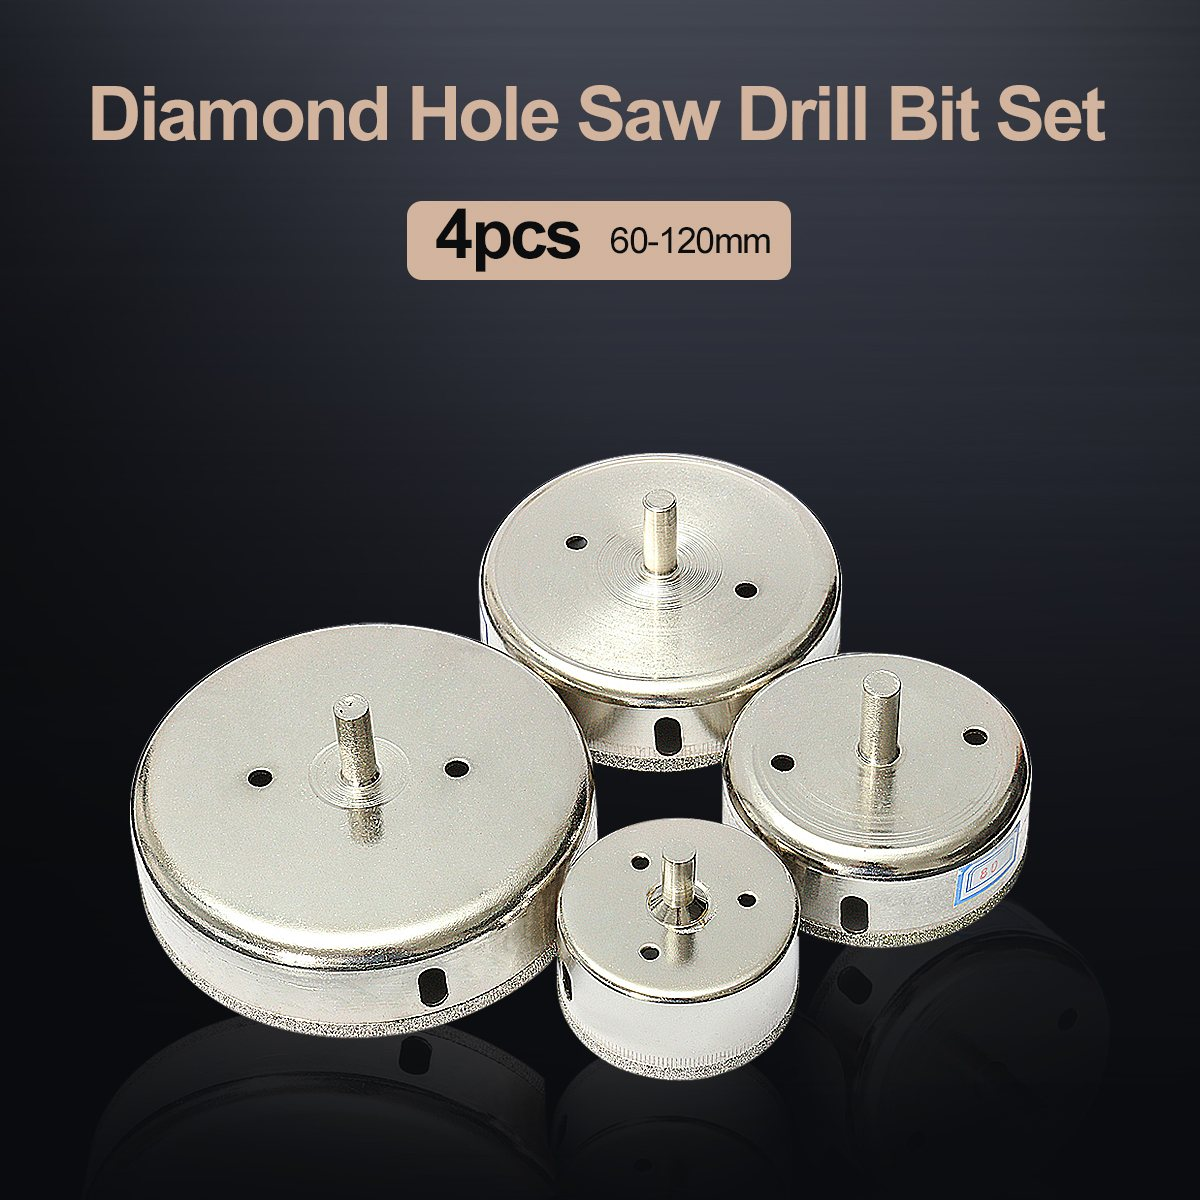 4pcs 60/80/100/120 mm Diamond Hole Saw Tile Set Drill Bit for Ceramic Glass Tile Cutting Porcelain Marble Drill Bit punch 10 mm nickel plating glass drill bit marble ceramic tile x 6